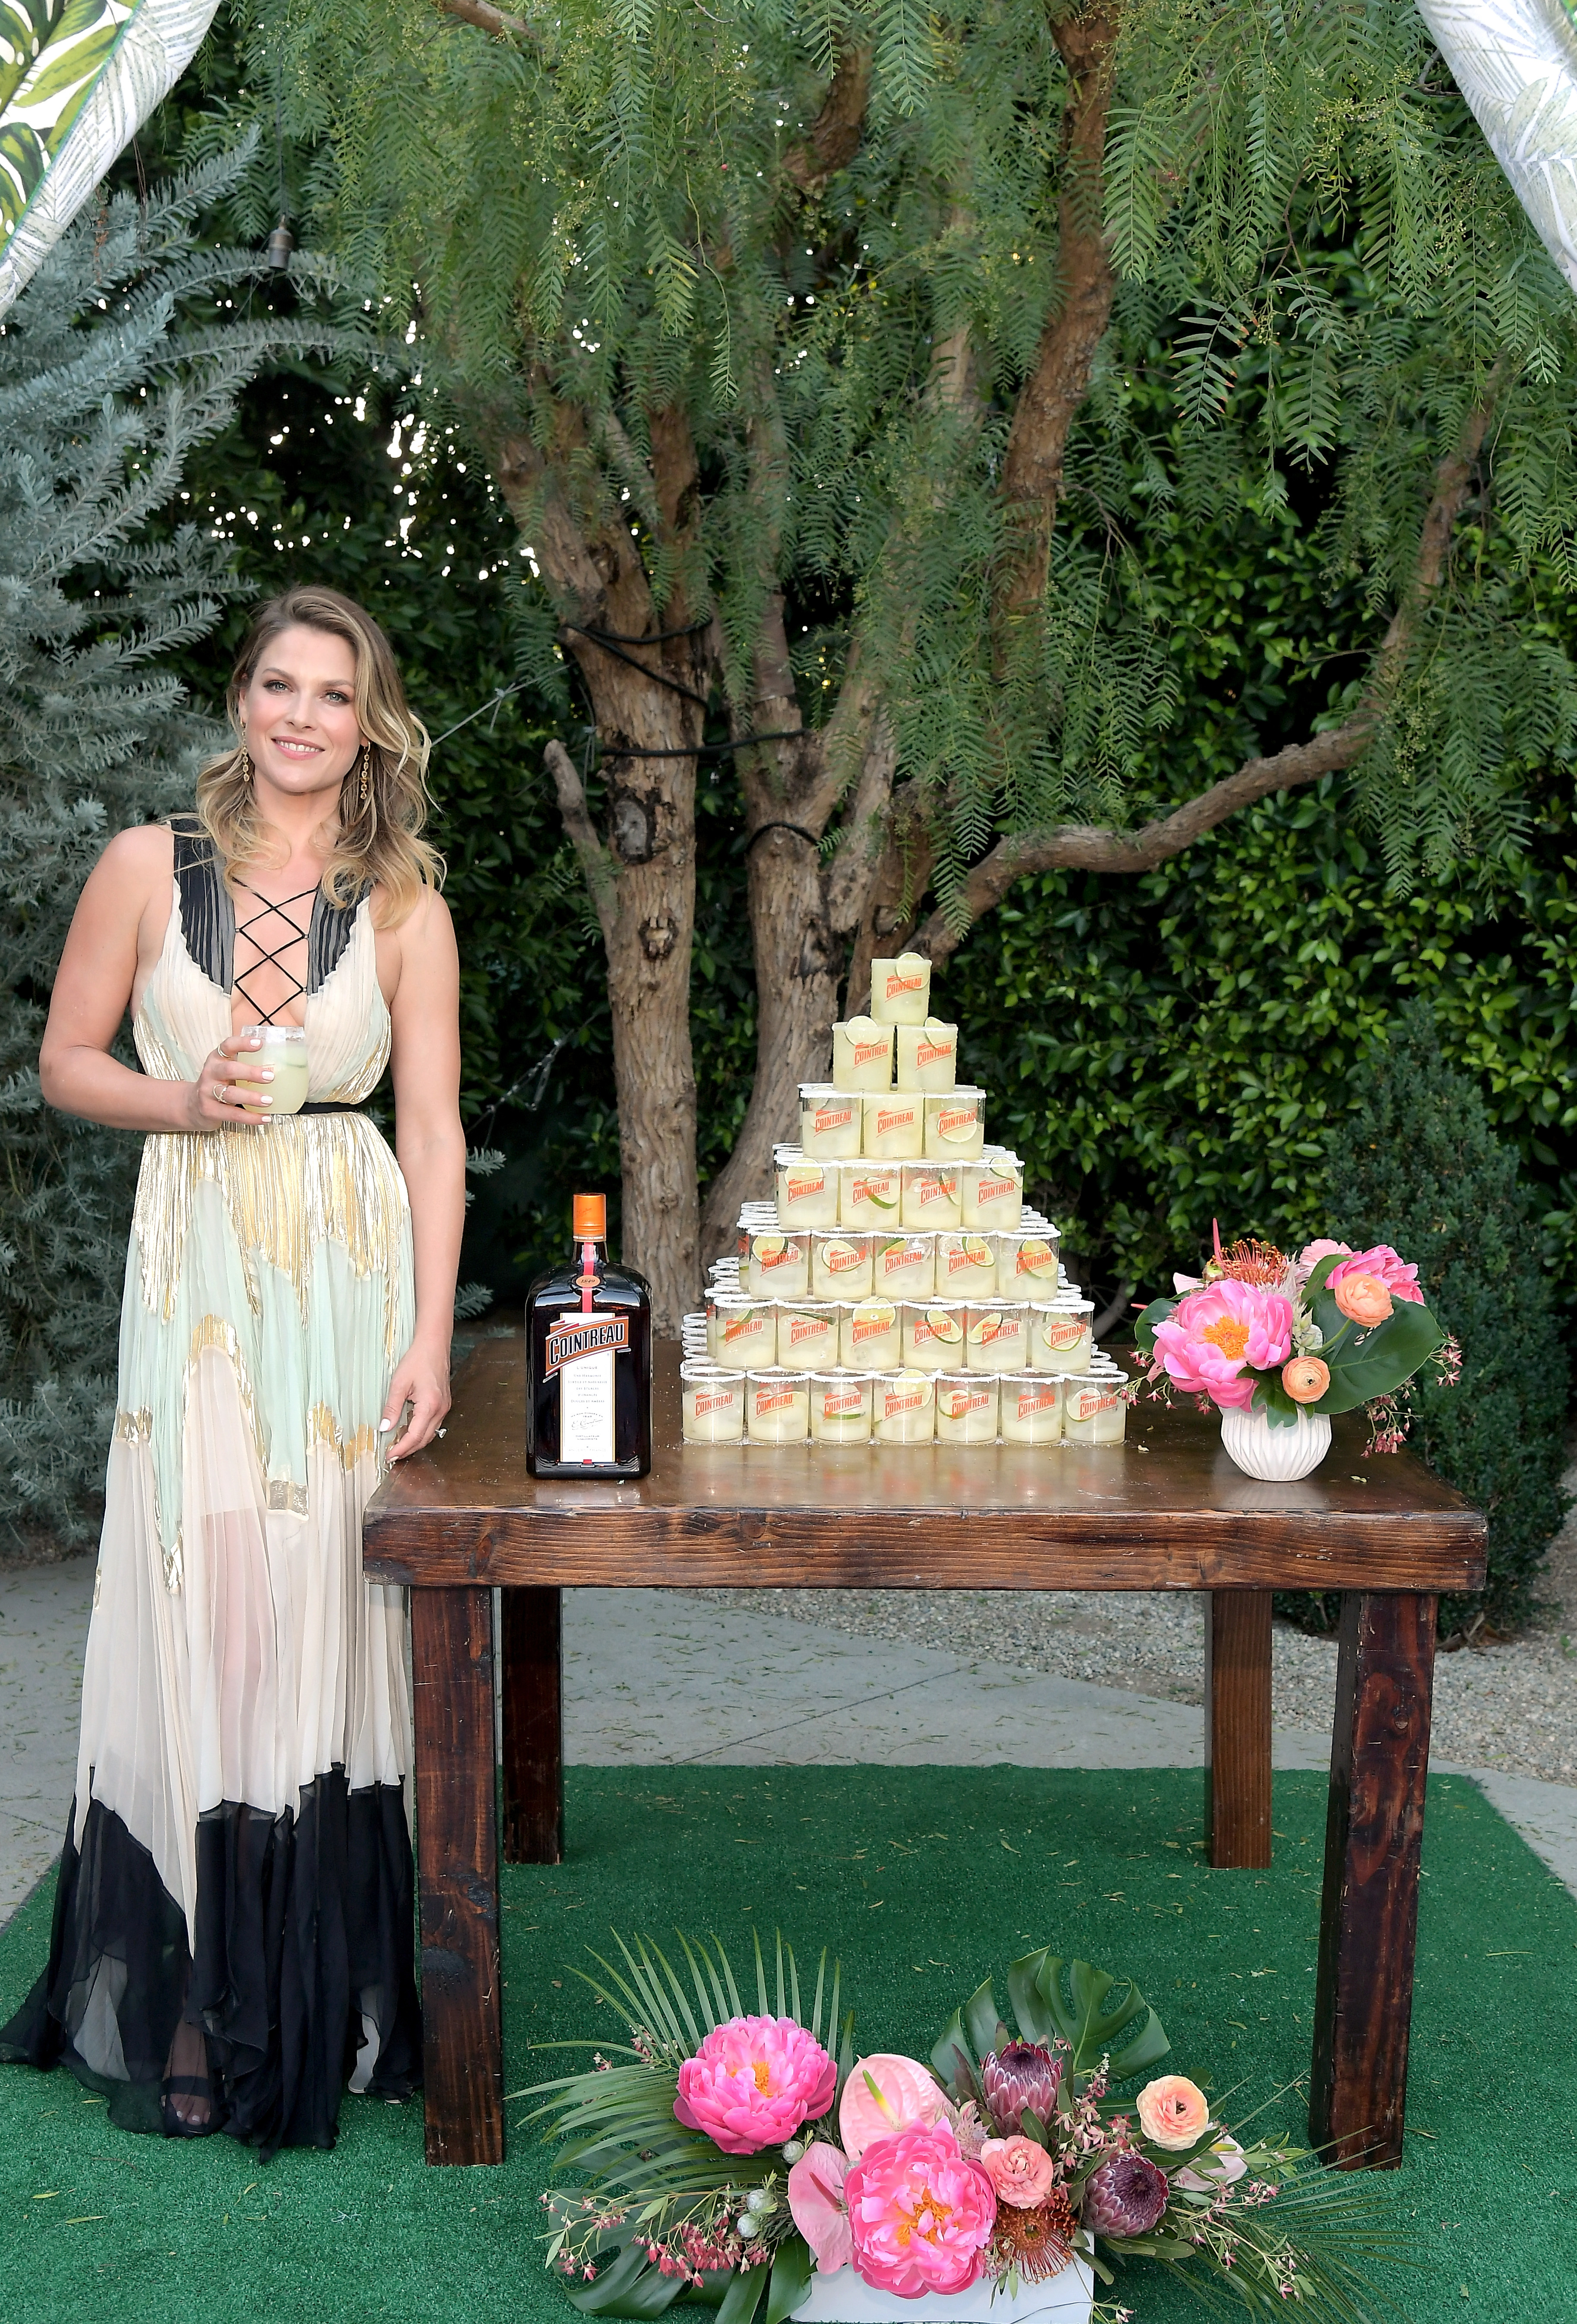 Ali Larter celebrates the Original Margarita and The Art of La Soirée with Cointreau at The Fig House in Los Angeles on June 21, 2017.